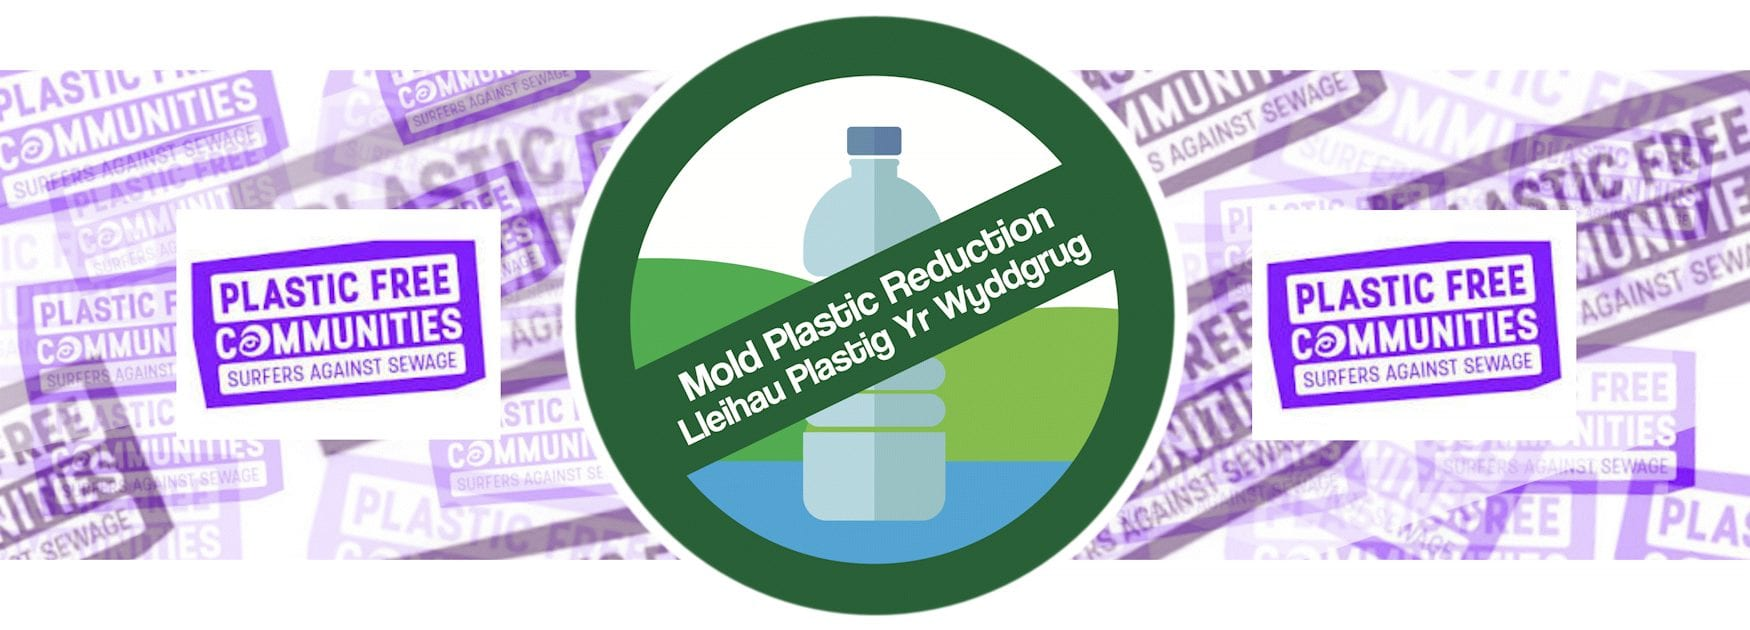 Header image for Plastic Free Communities page showing Surfers Against Sewage promotional logo